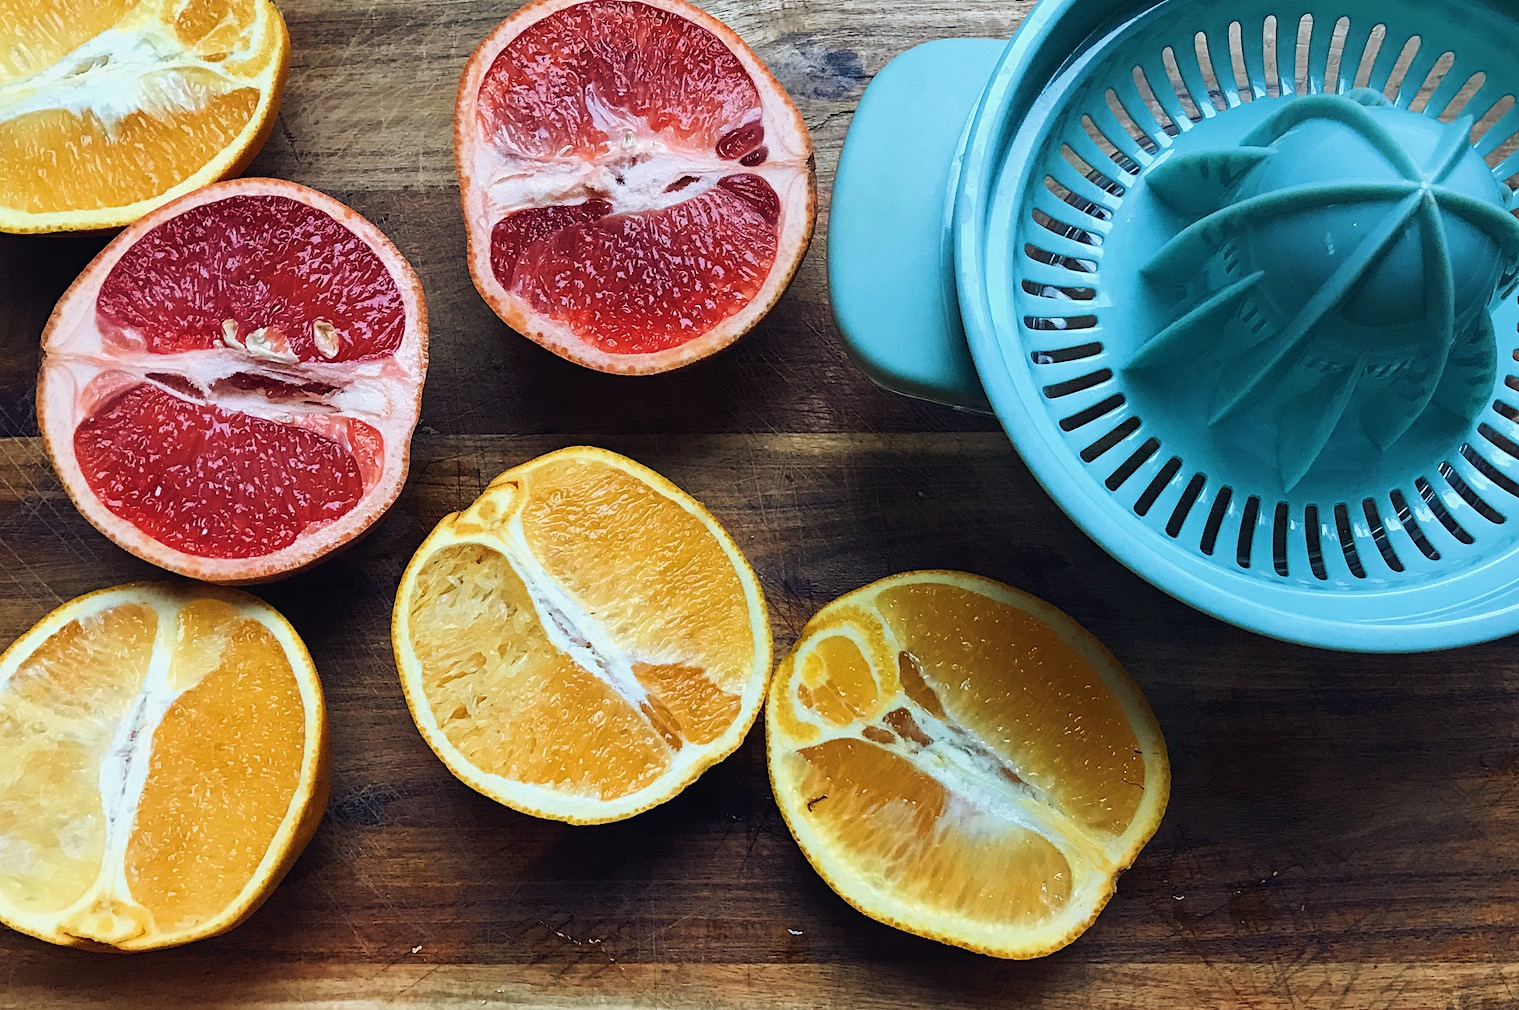 CITRUS FRUITS - are a juicy source of vitamin C.